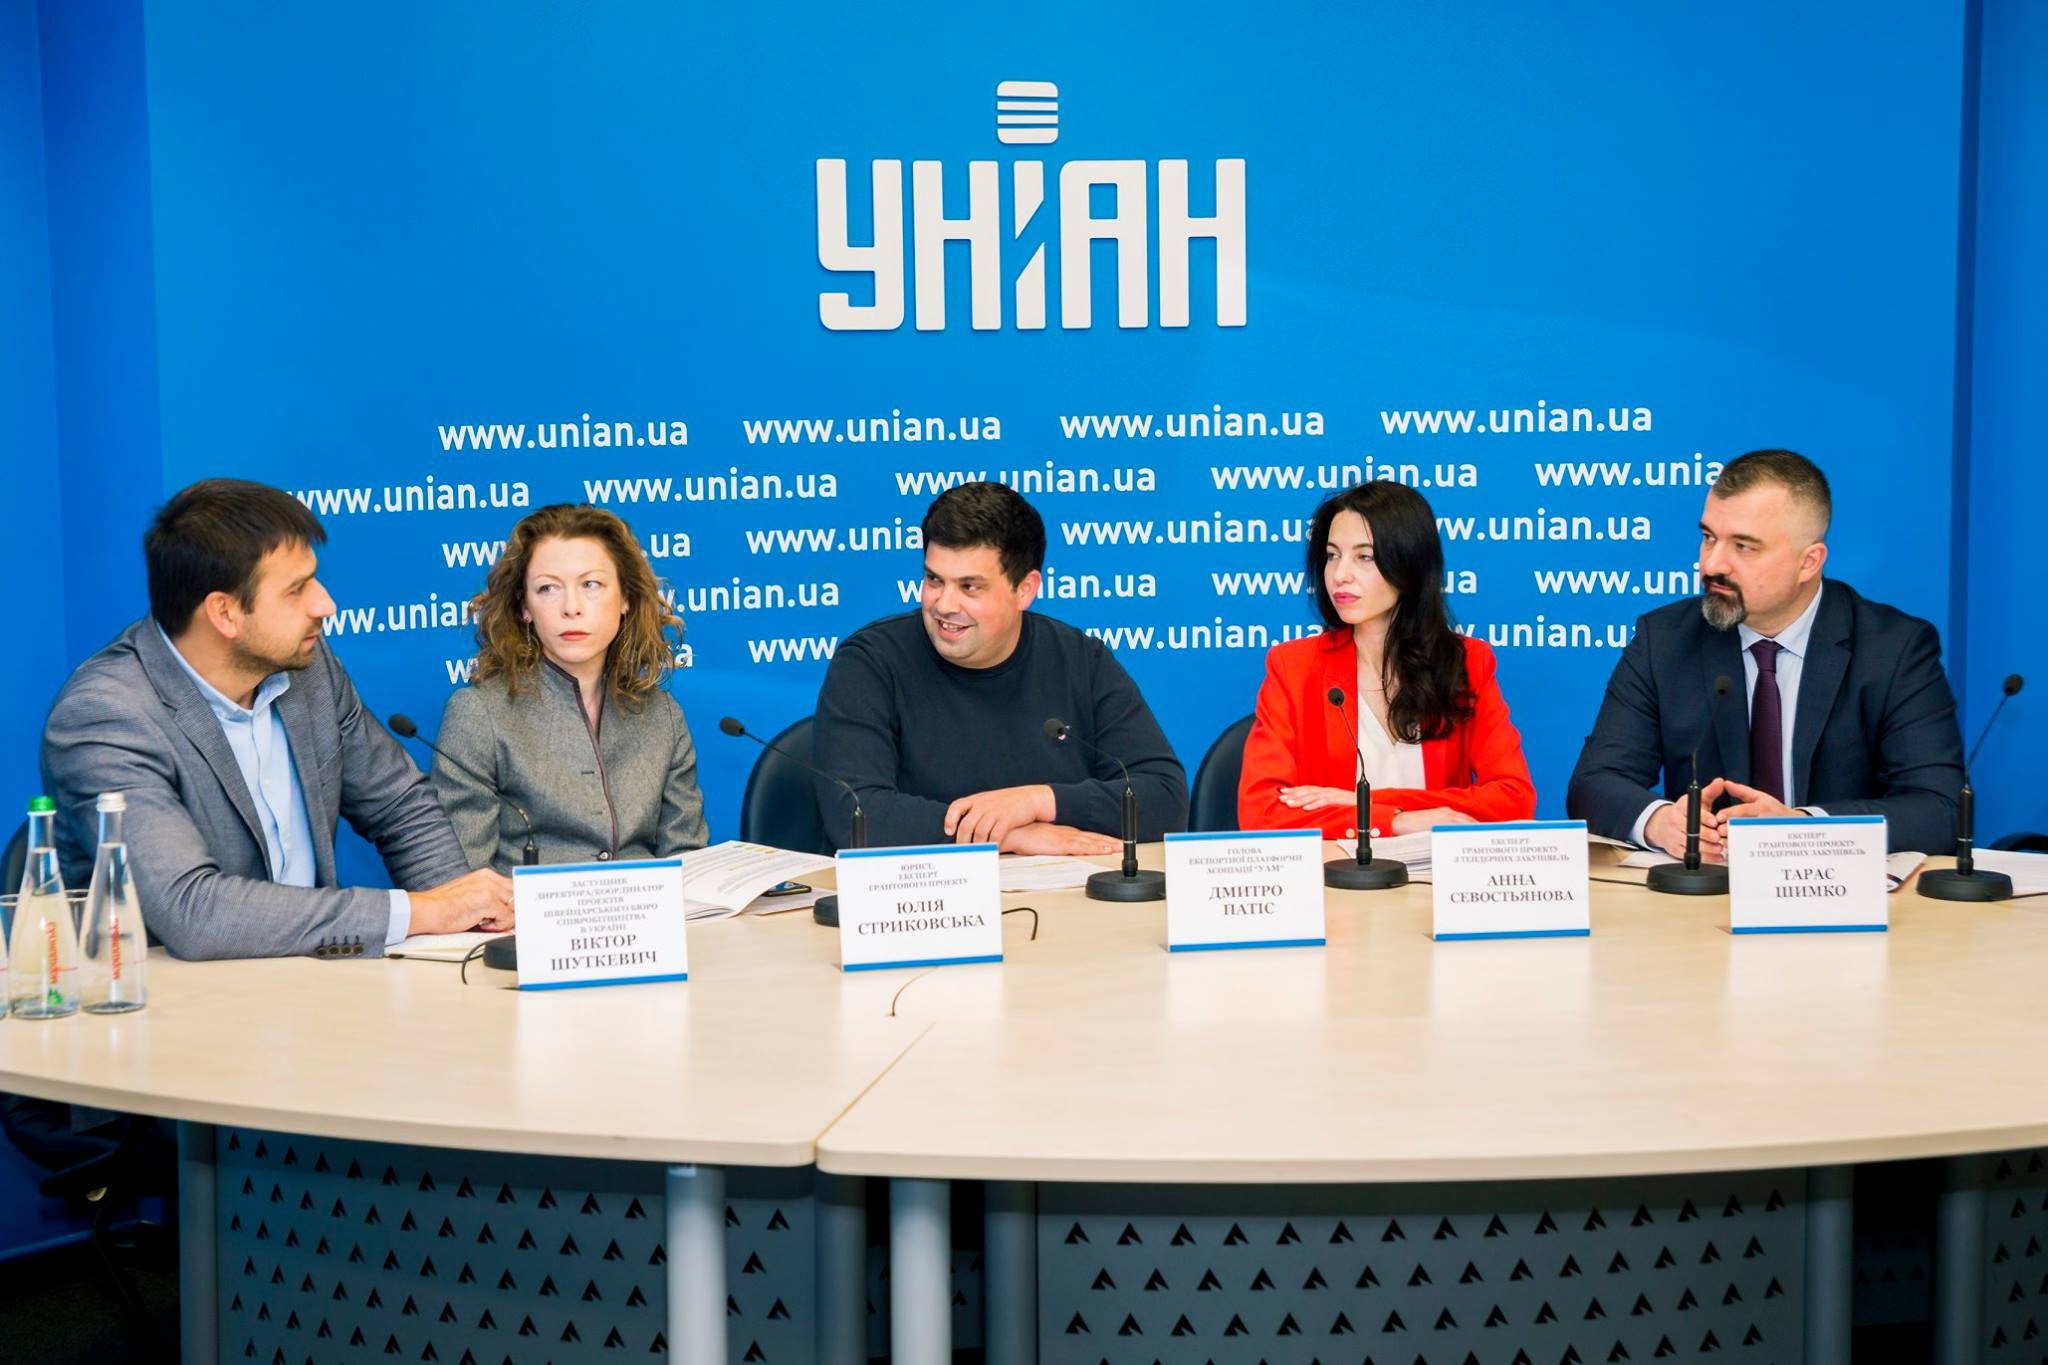 Press conference on the topic: Tender Together - Ukrainian